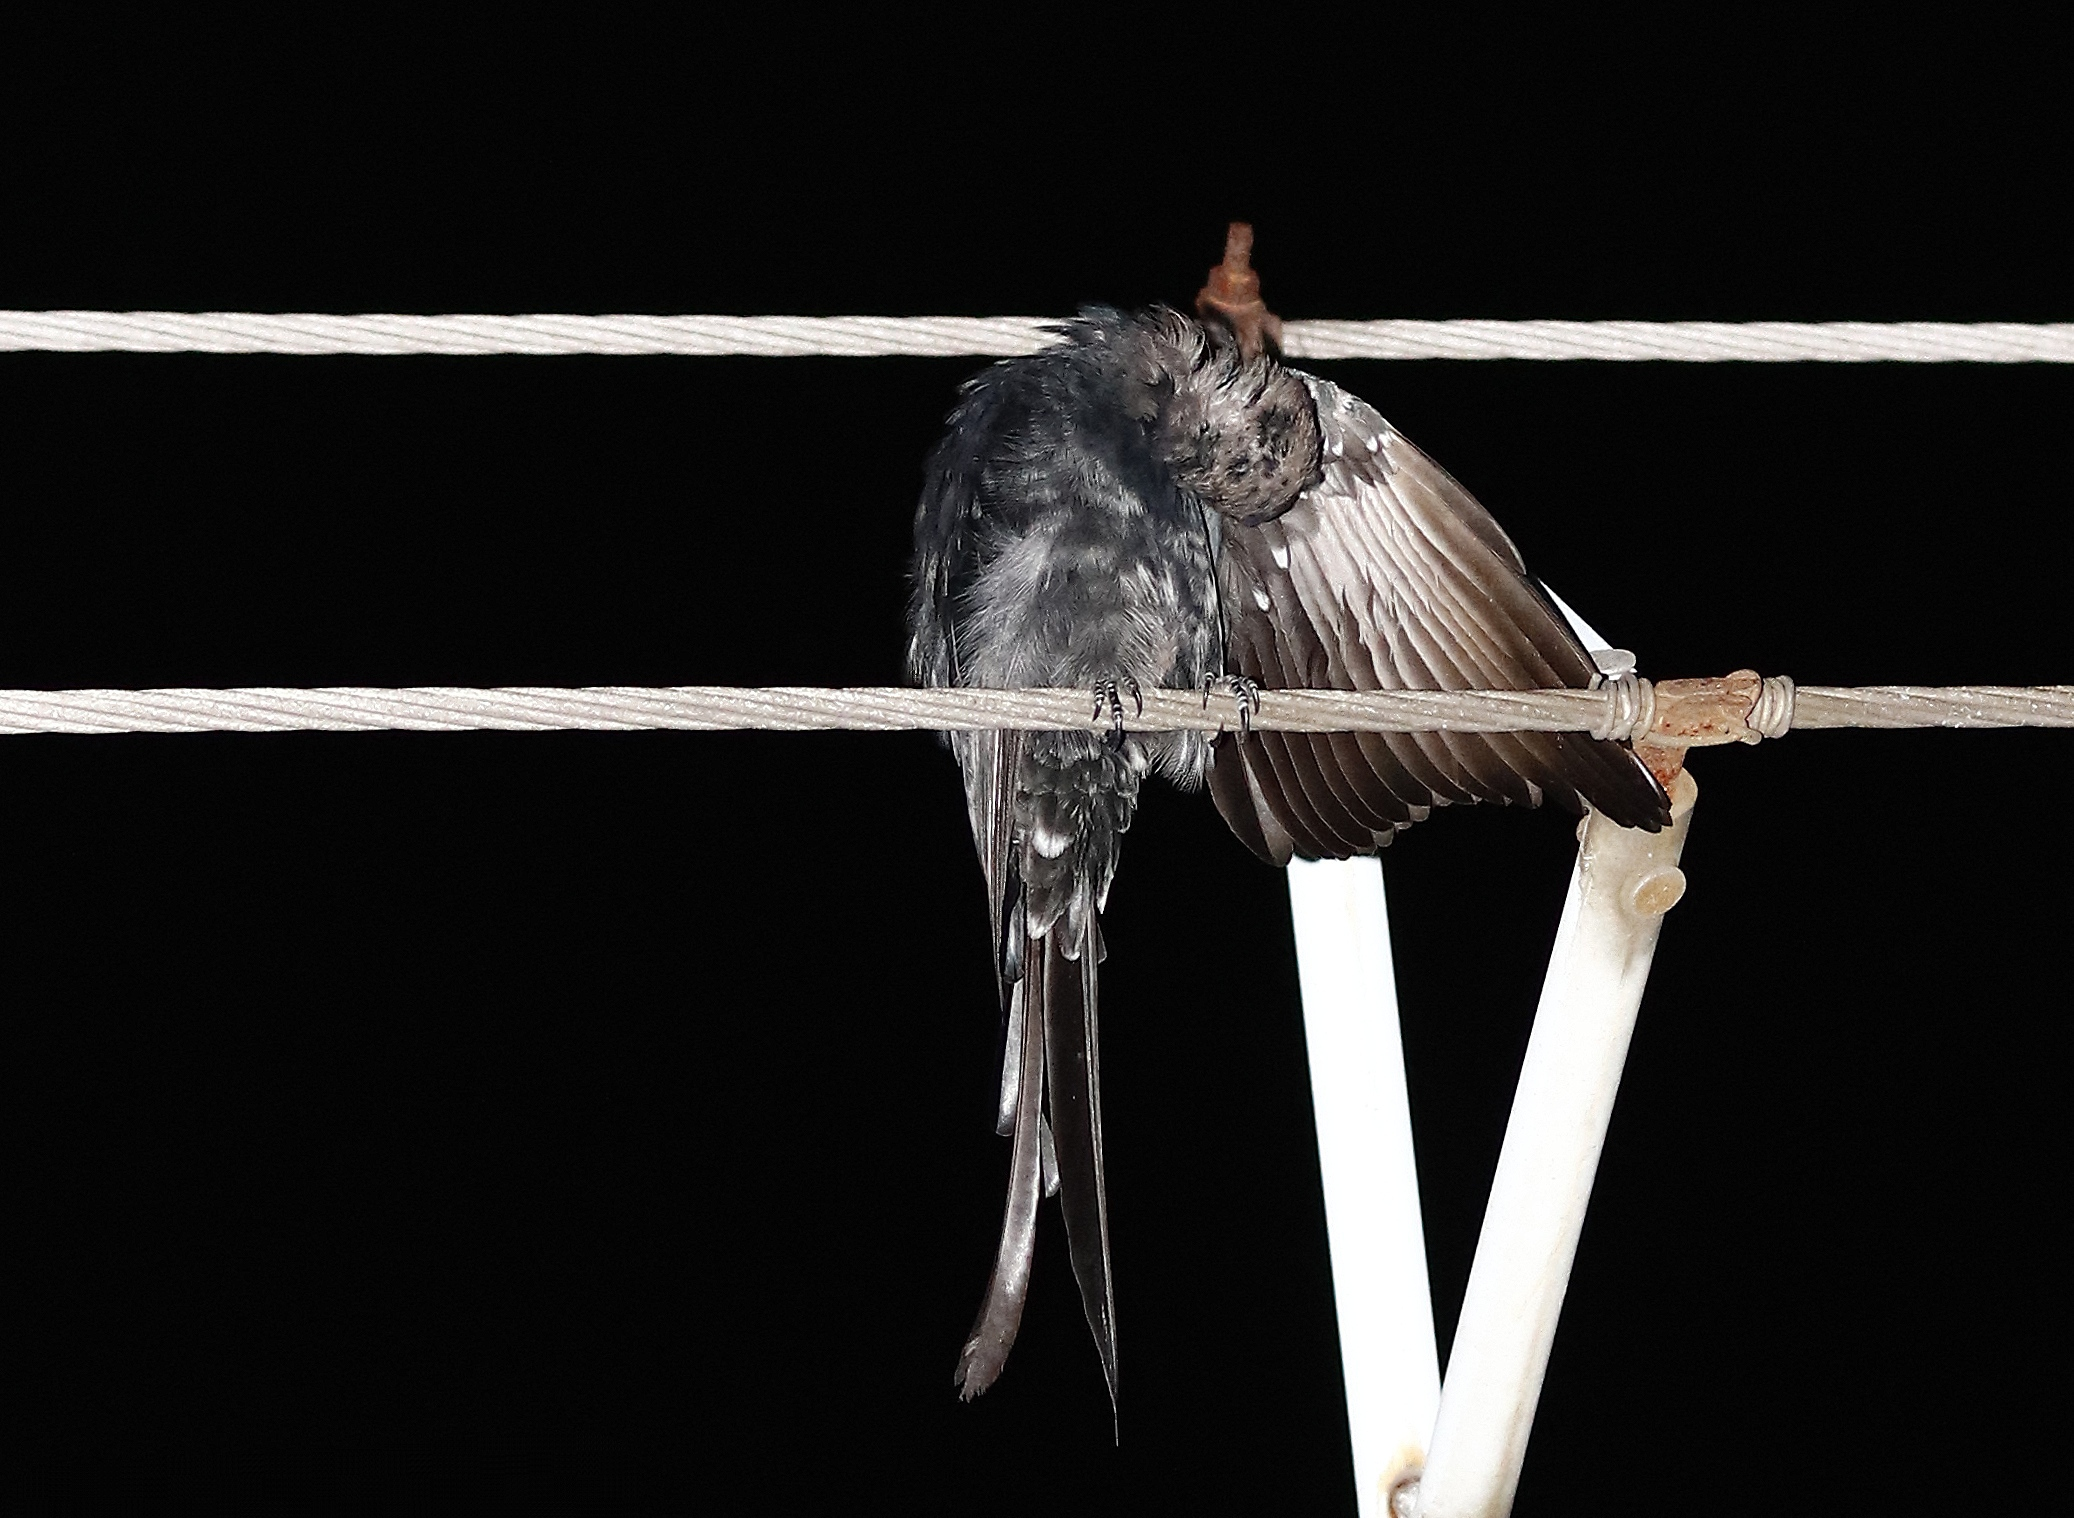 Bird Sitting on Electrical Wire